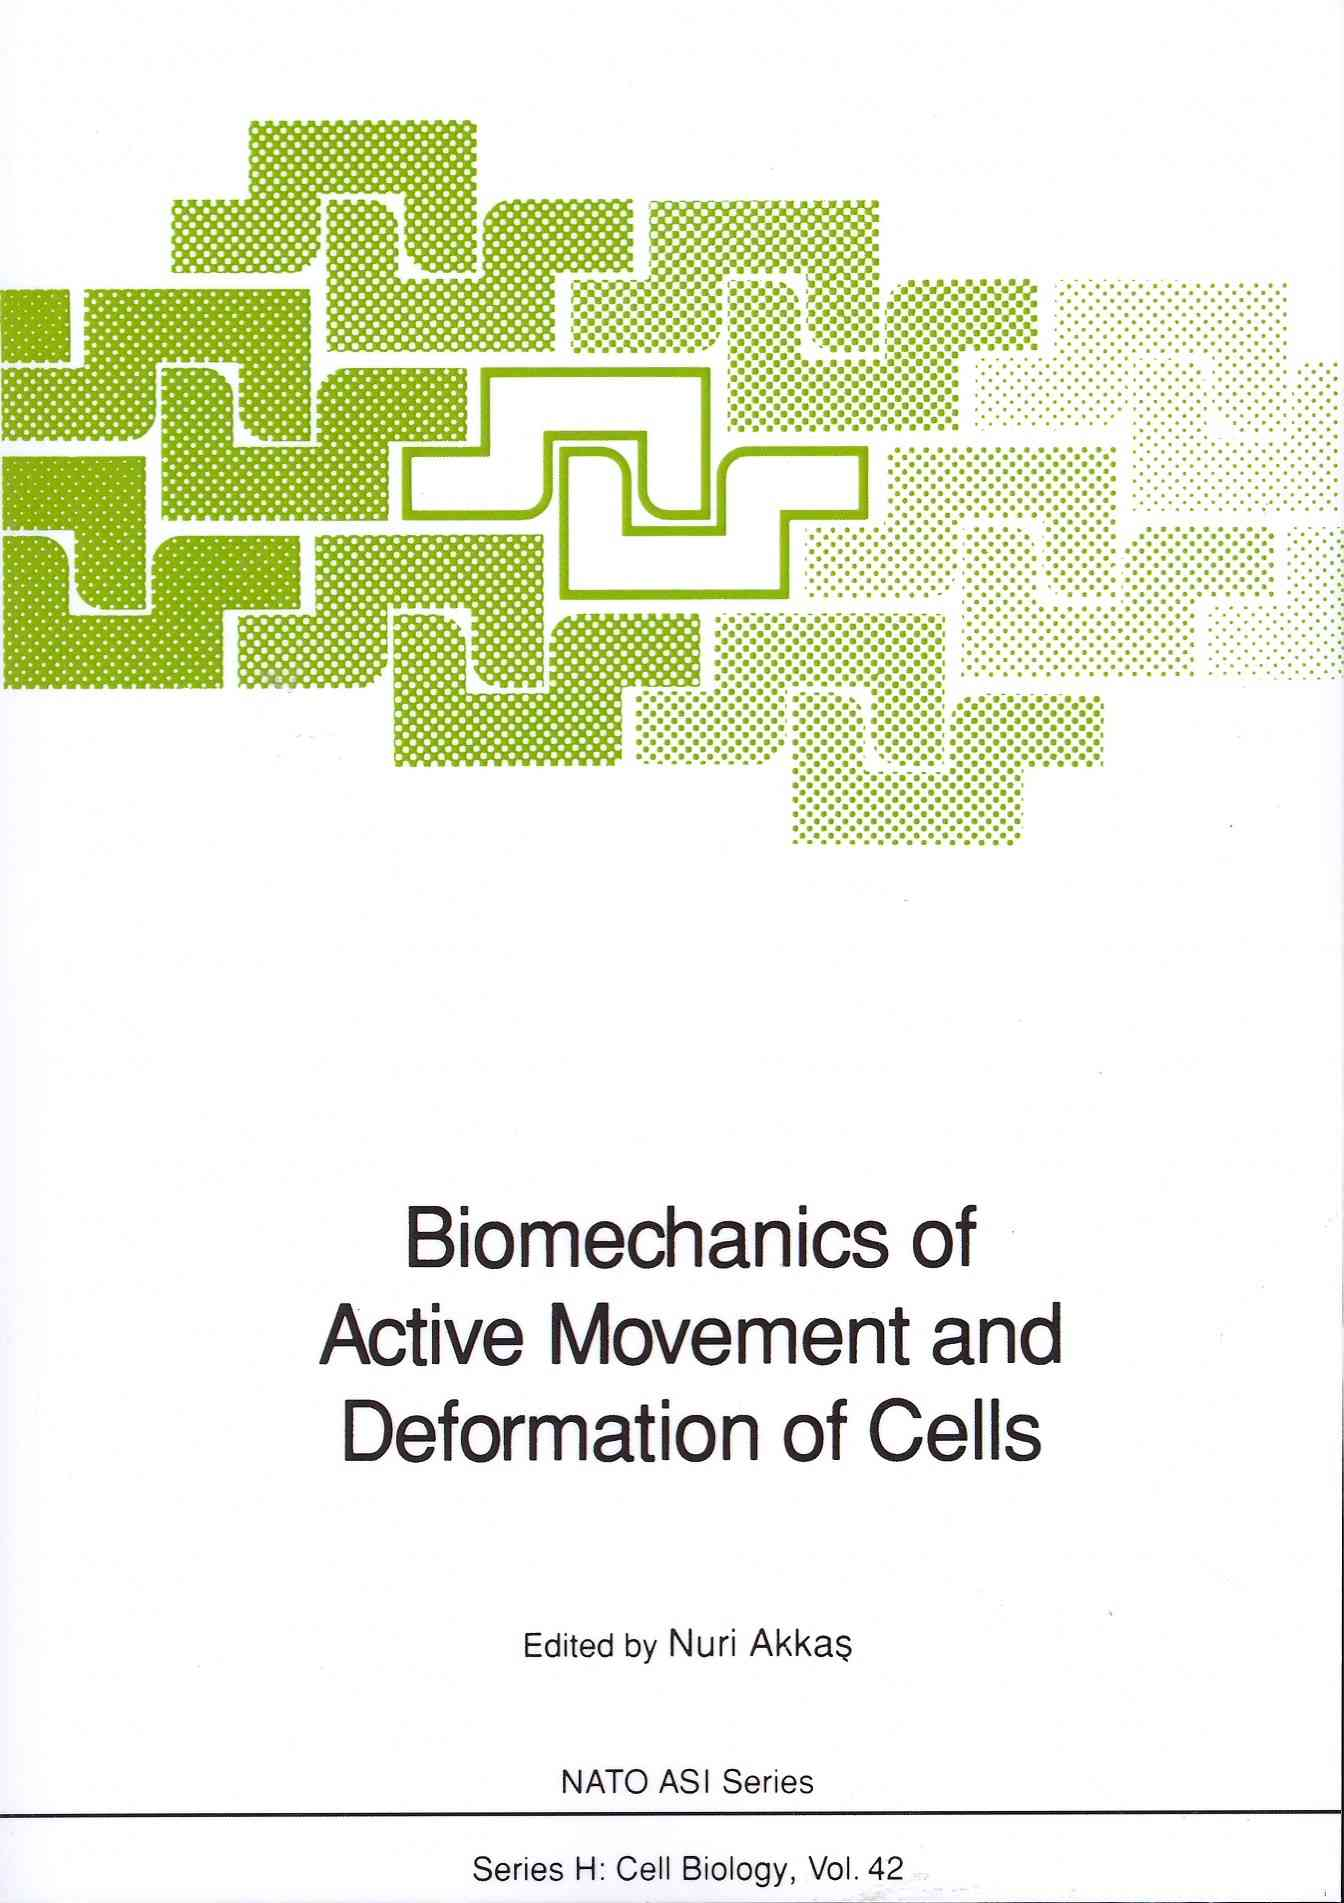 Biomechanics of Active Movement and Deformation of Cells By Akkas, Nuri (EDT)